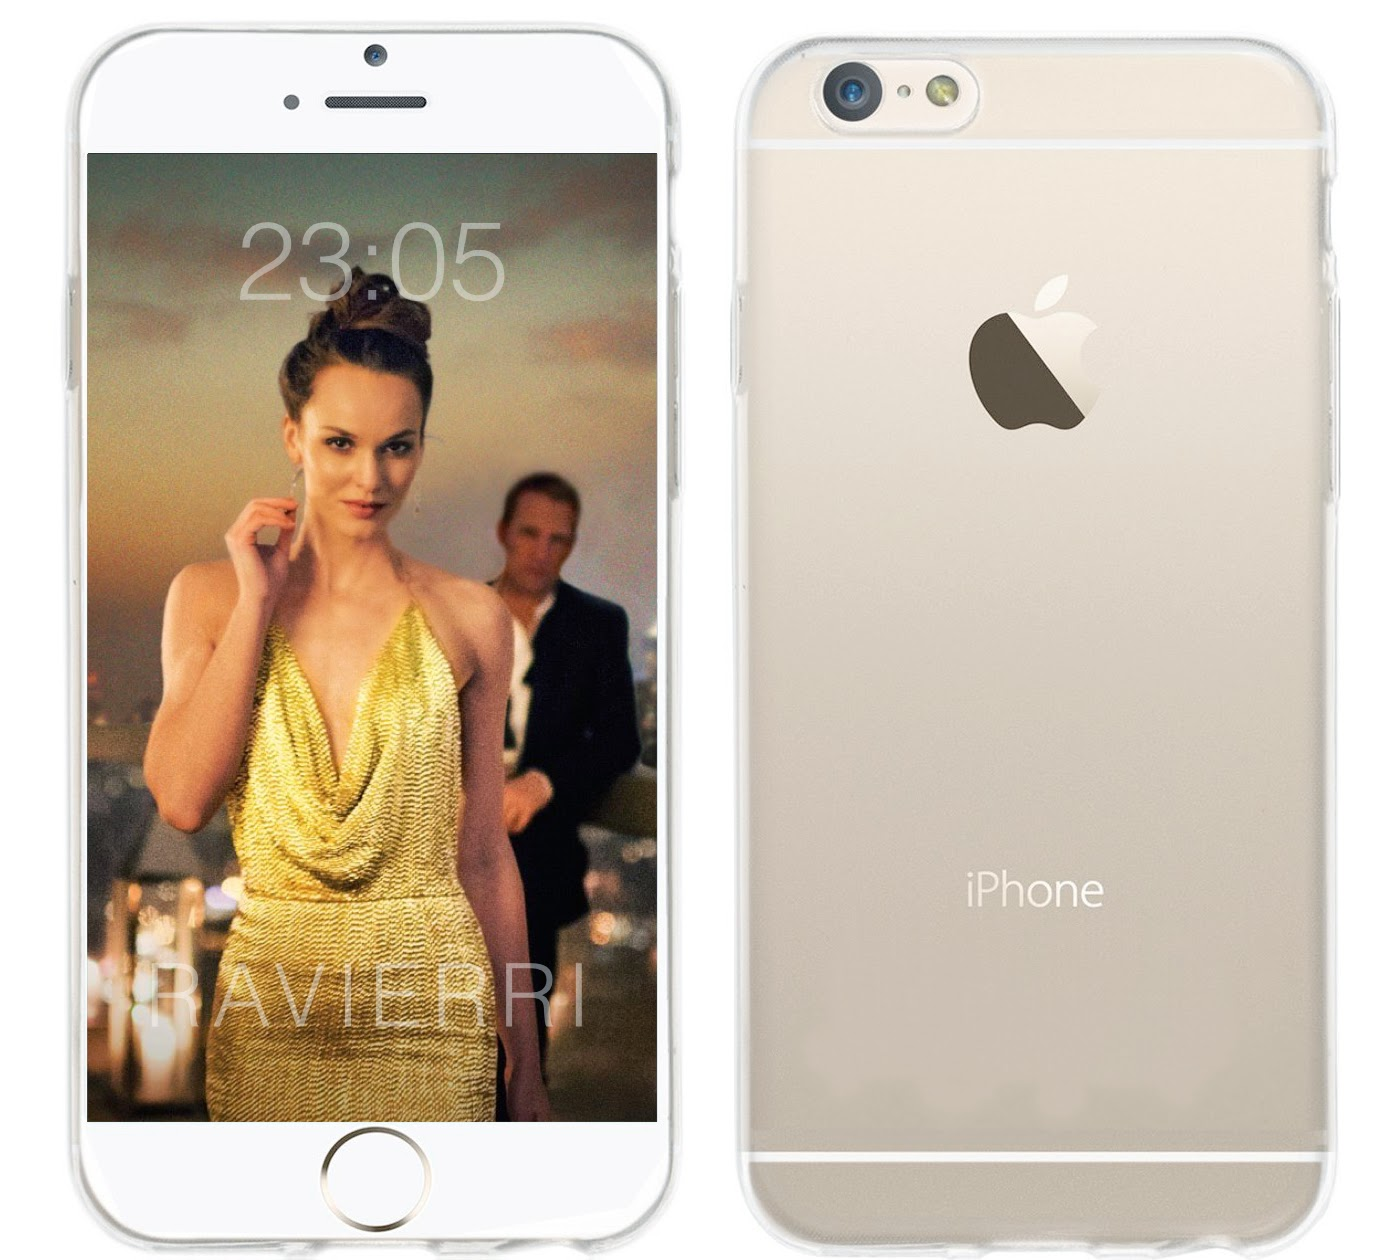 http://www.amazon.com/iphone-clear-case-protective-protection/dp/b00pv0c246/ref=sr_1_1?ie=utf8&qid=1422139357&sr=8-1&keywords=iphone+6+case